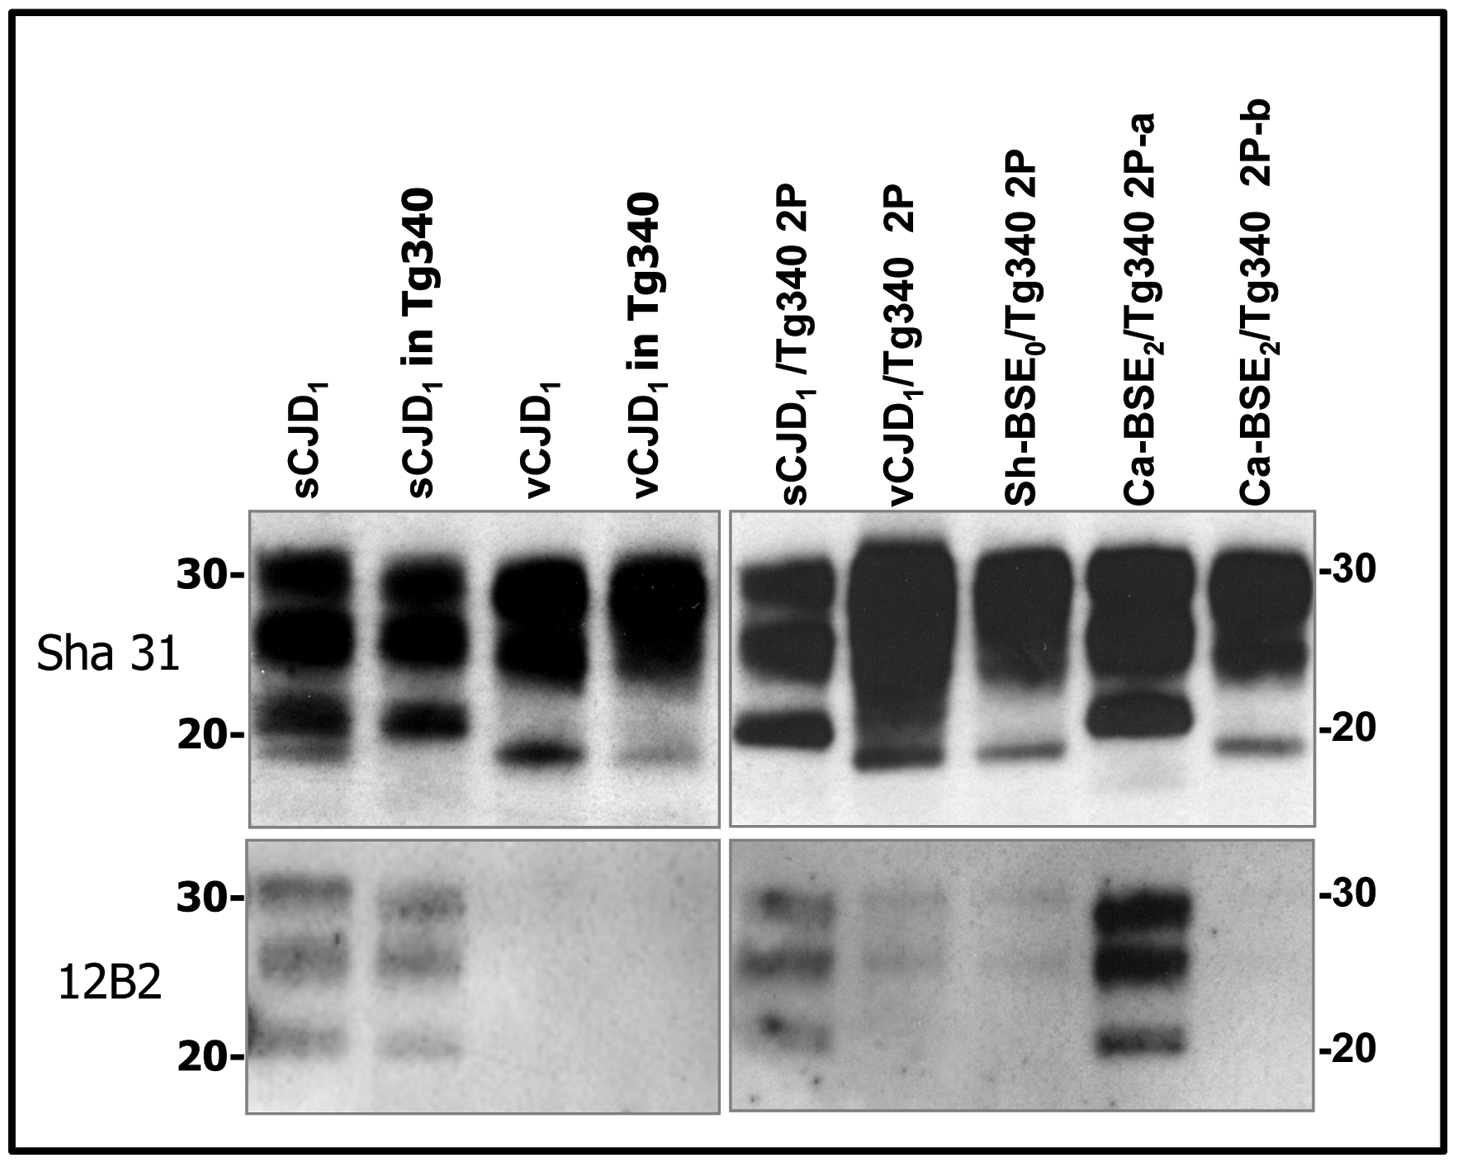 Western blots analysis of PrP<sup>res</sup> in the brains of tg340 mice infected with human, bovine and ovine isolates.